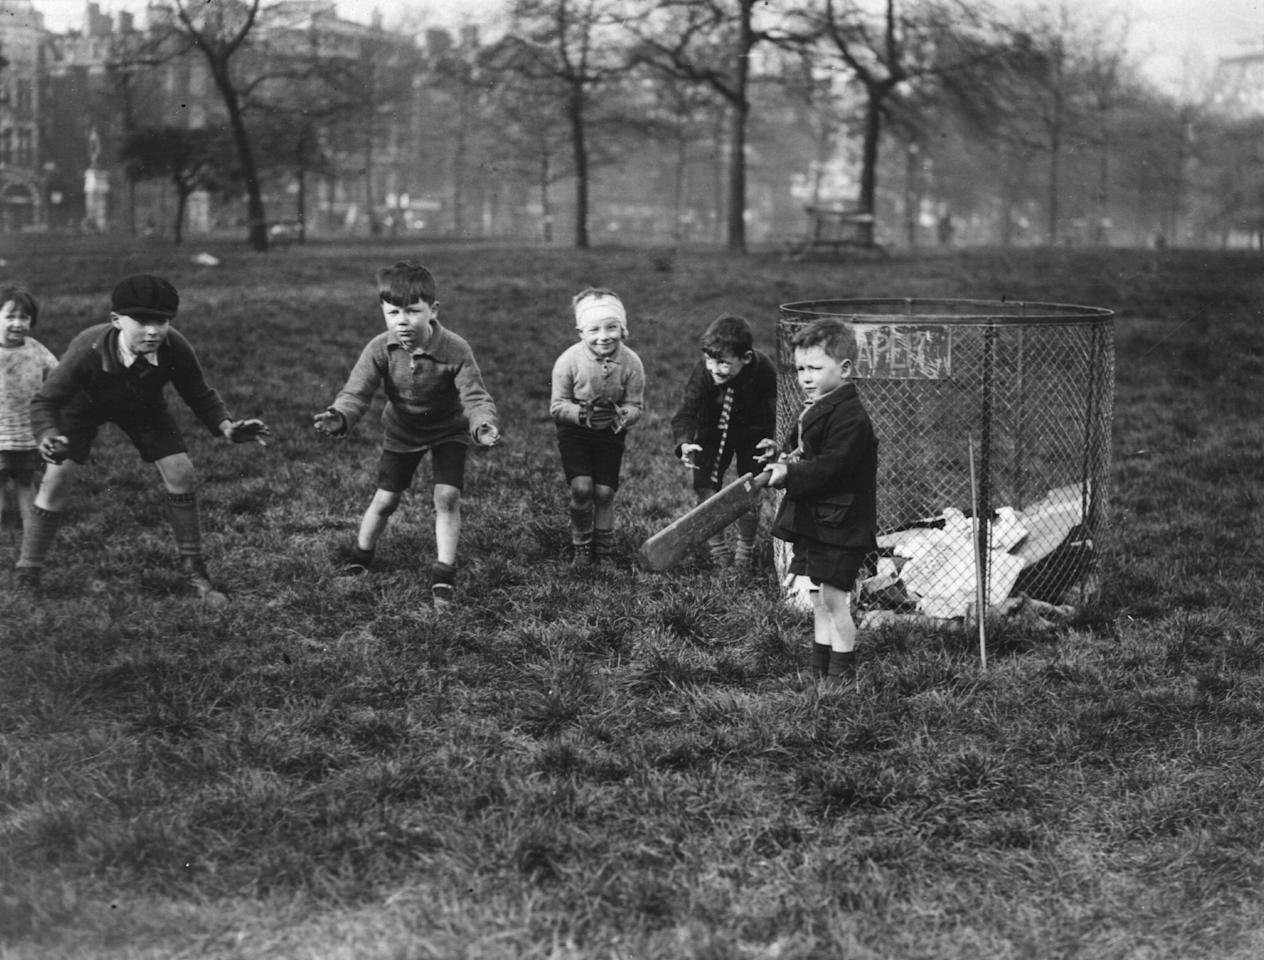 circa 1926:  A group of young children playing cricket in London's Hyde Park.  (Photo by Topical Press Agency/Getty Images)